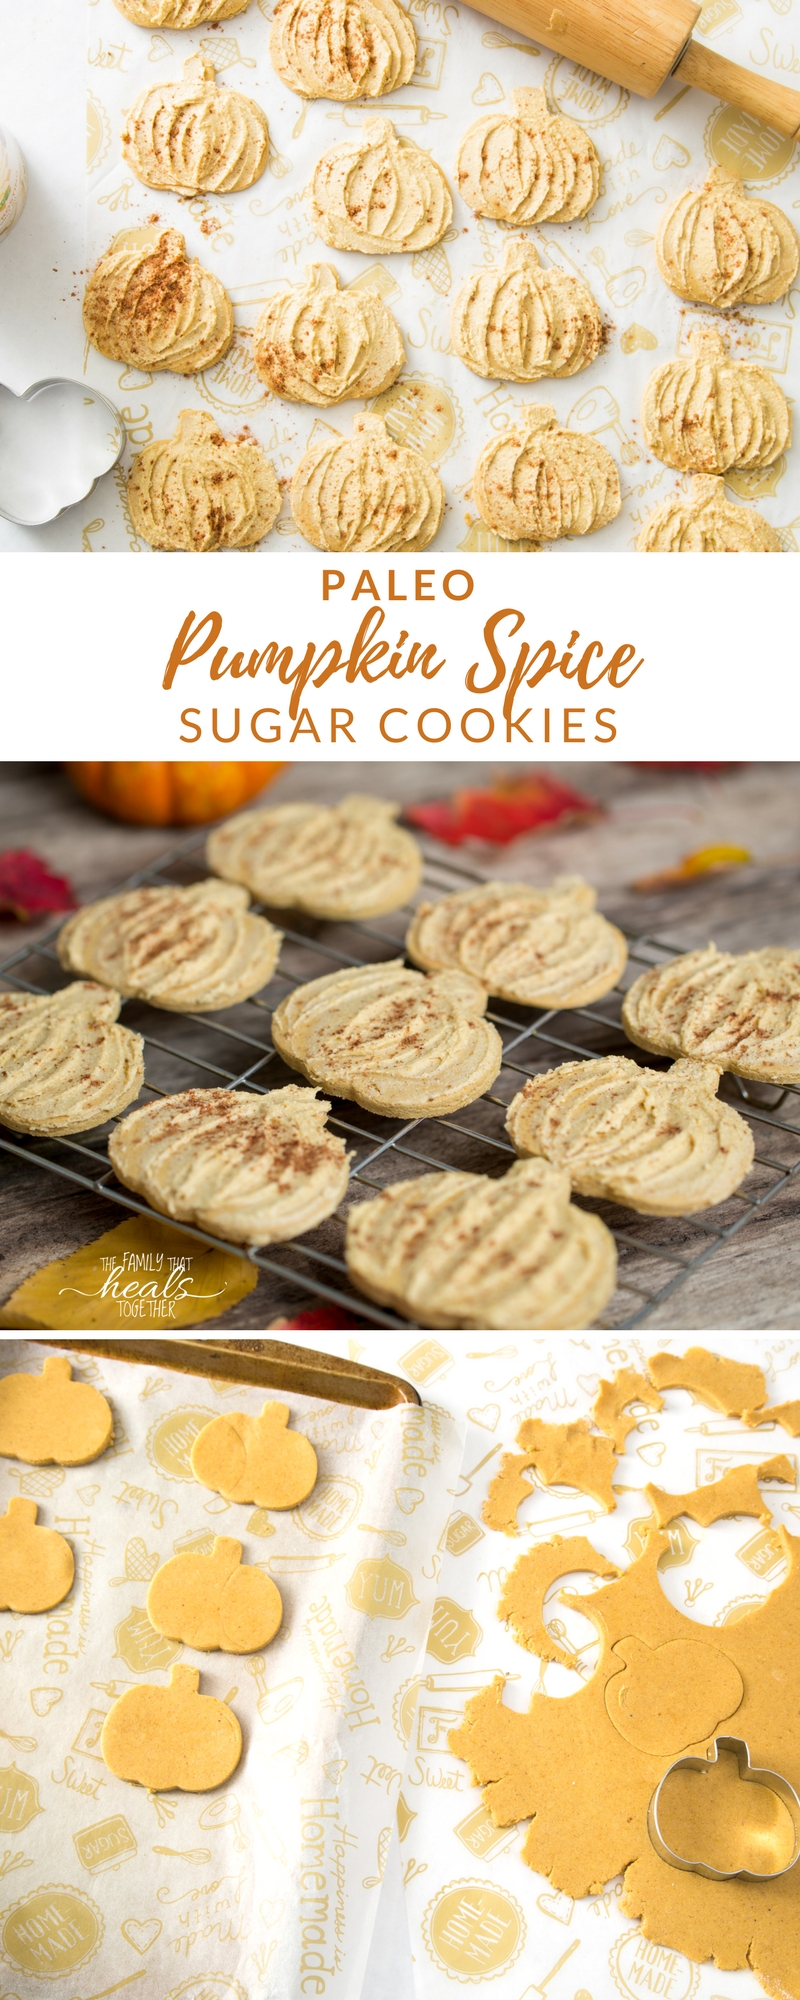 Paleo sugar cookies get a makeover with these pumpkin spice cookies! Still easy; still delicious; still paleo! No gluten, grains, dairy, or refined sugars.